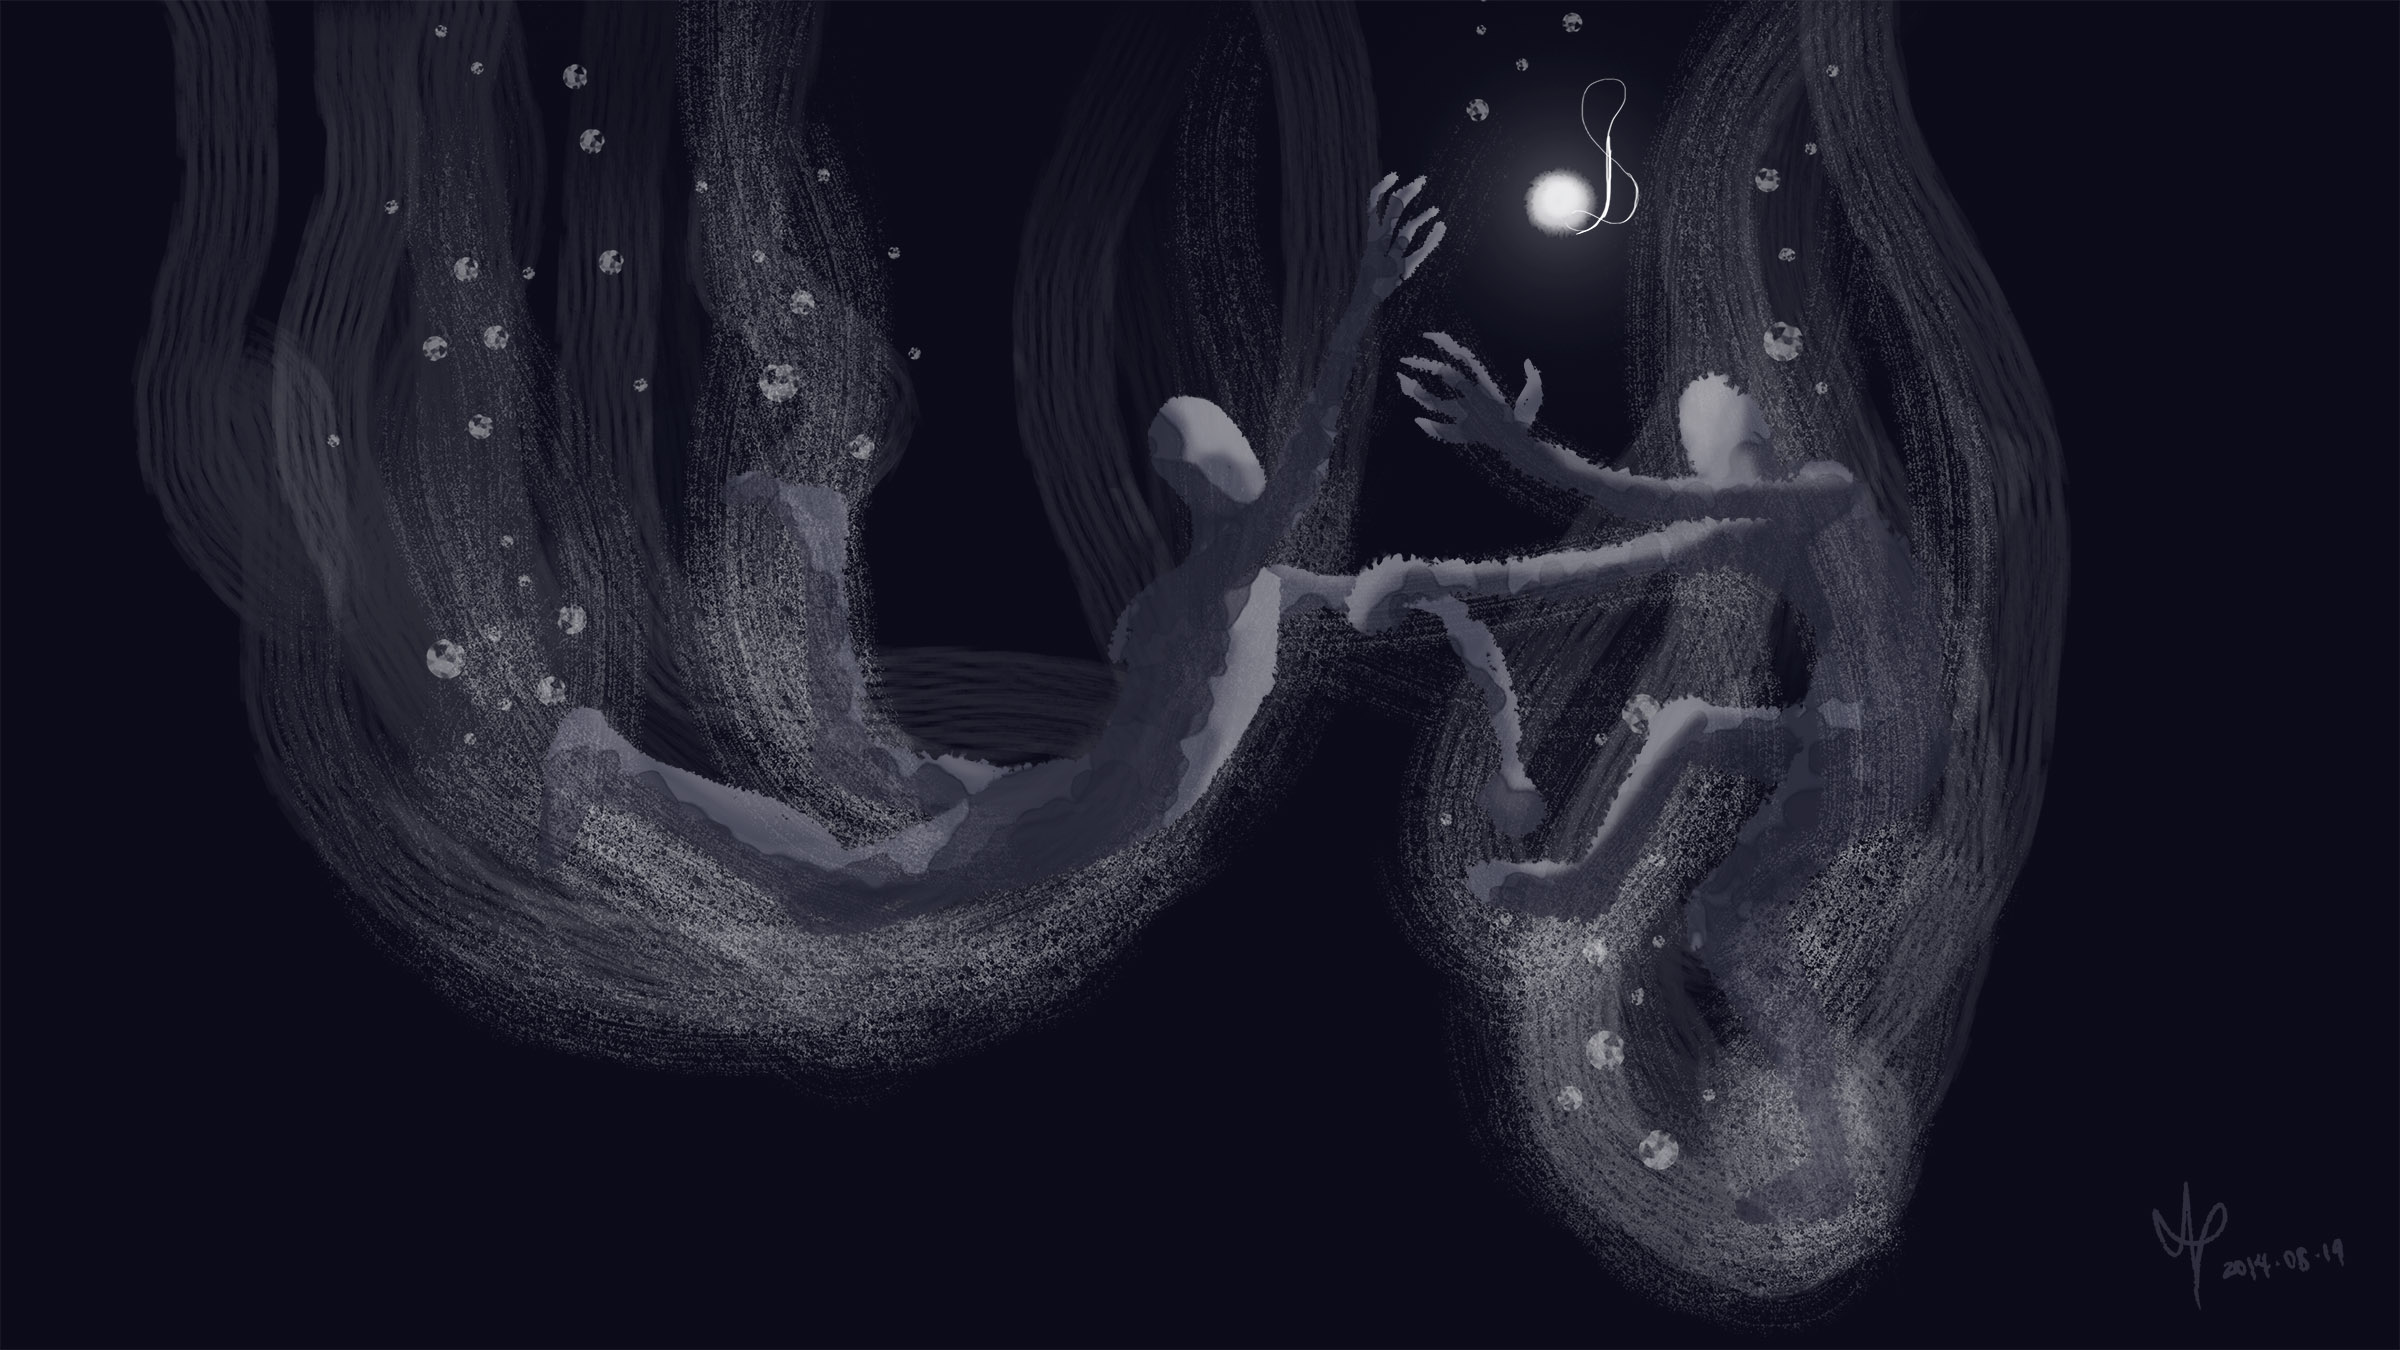 A digital painting of two figures grappling underwater for possession of a glowing necklace.